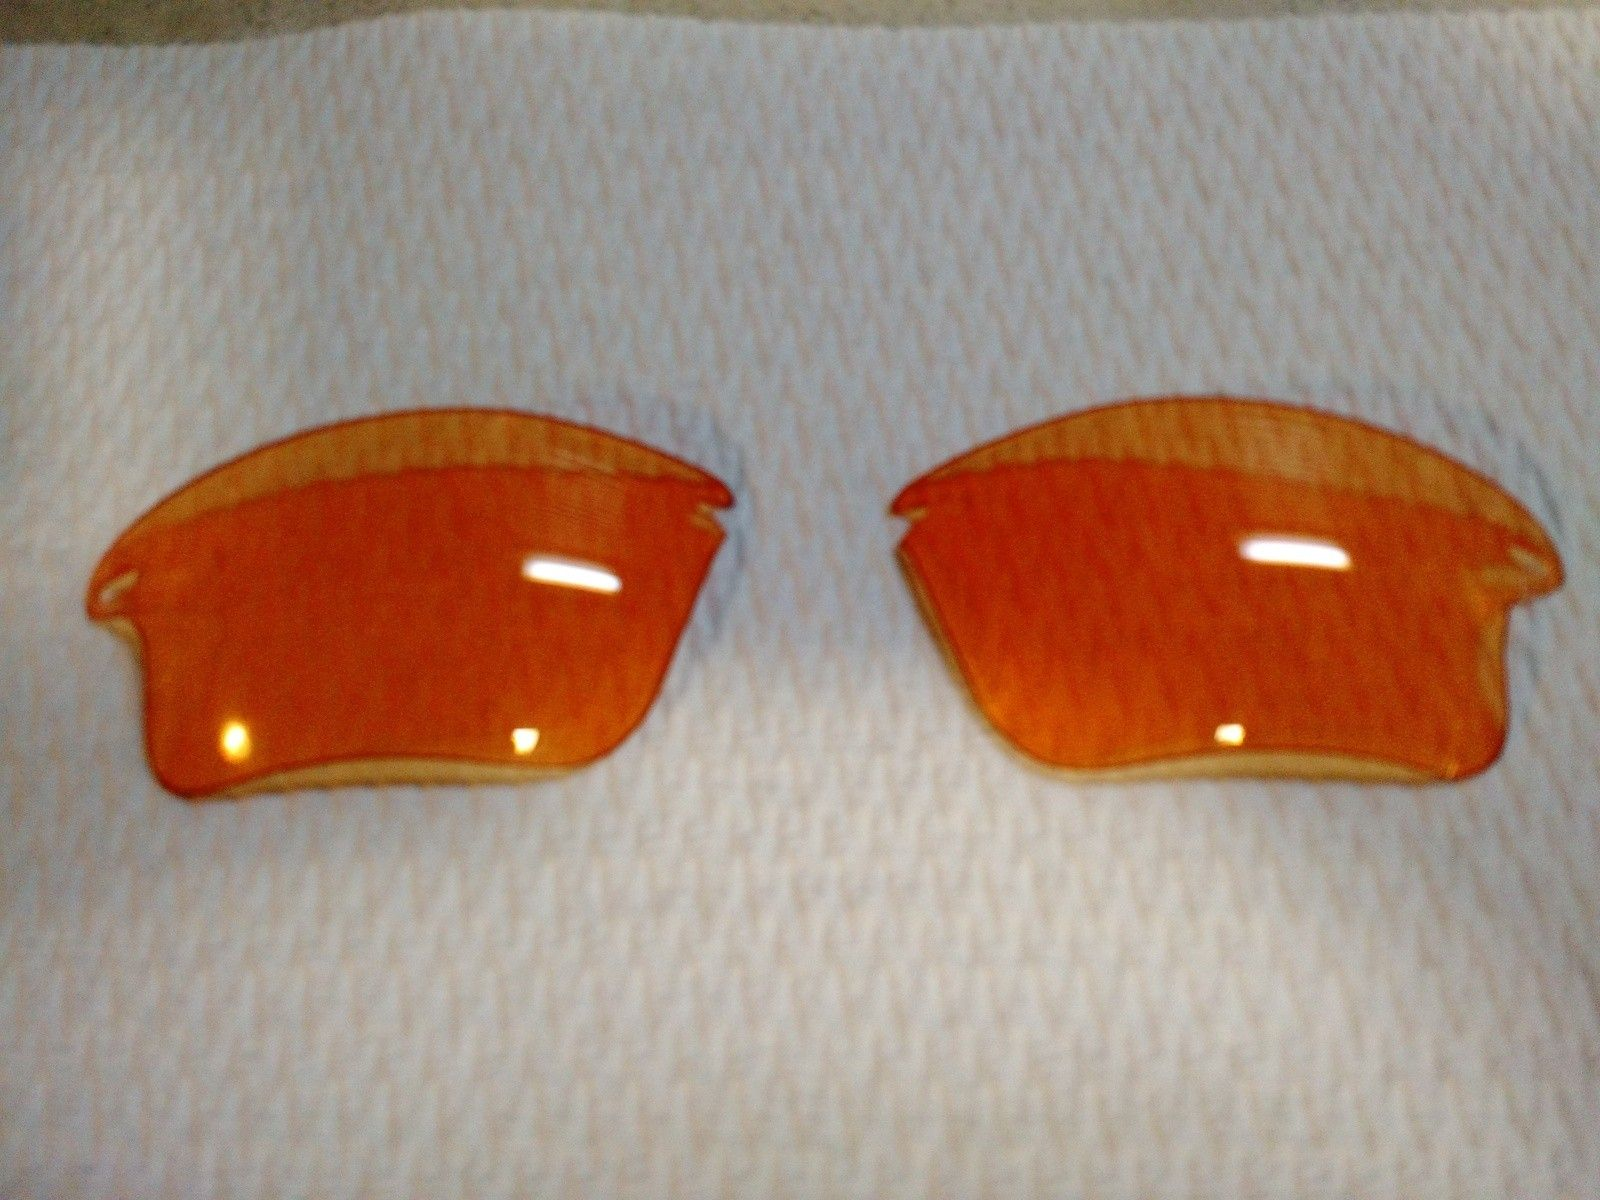 Black Hijinx icons & Fast Jacket persimmon XL lenses - IMG_20150131_233811013.jpg